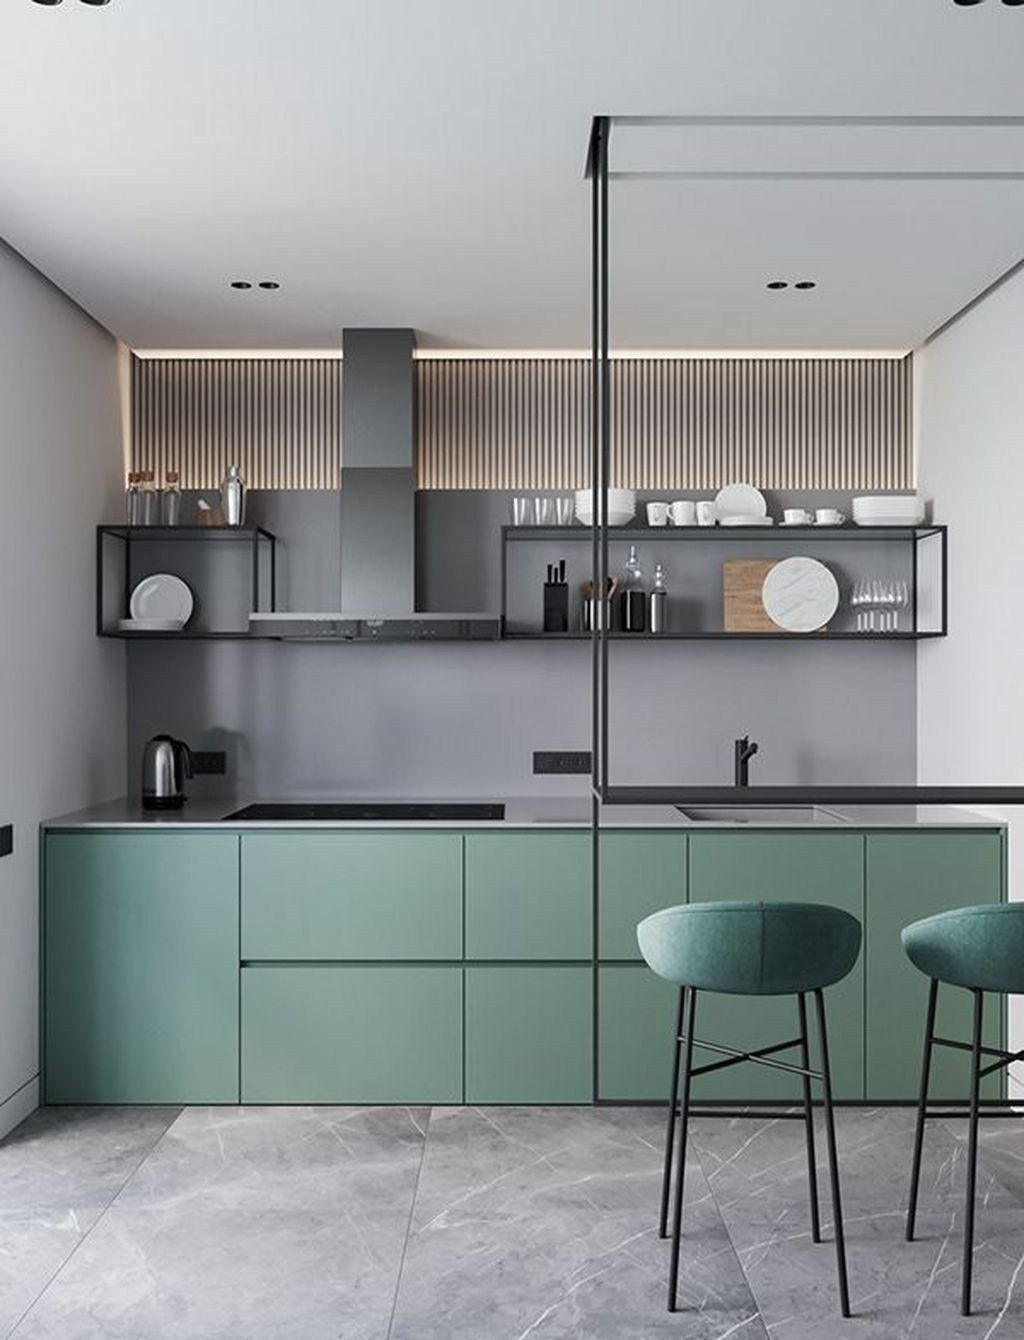 catchy small kitchen ideas that can make inspire all people09 catchy small kitchen ideas that can make inspire all people09 furniture